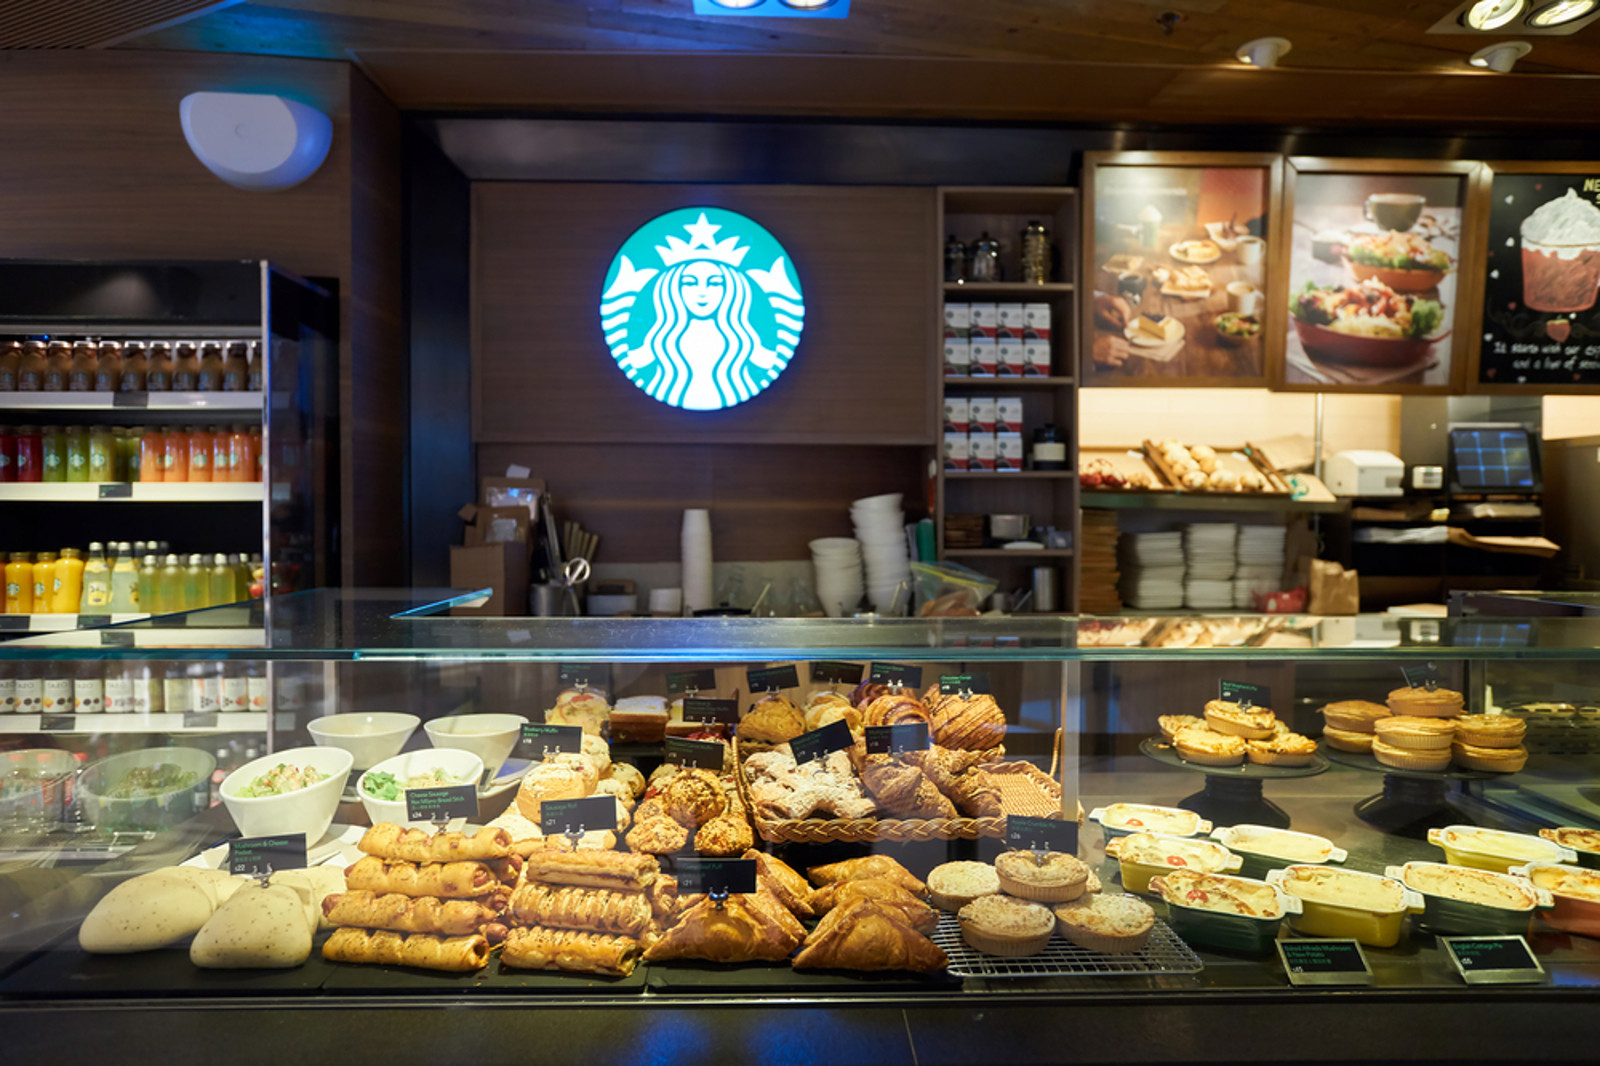 Starbucks Vegan Pastries  Starbucks Adds Its First Vegan Prepared Breakfast Item to